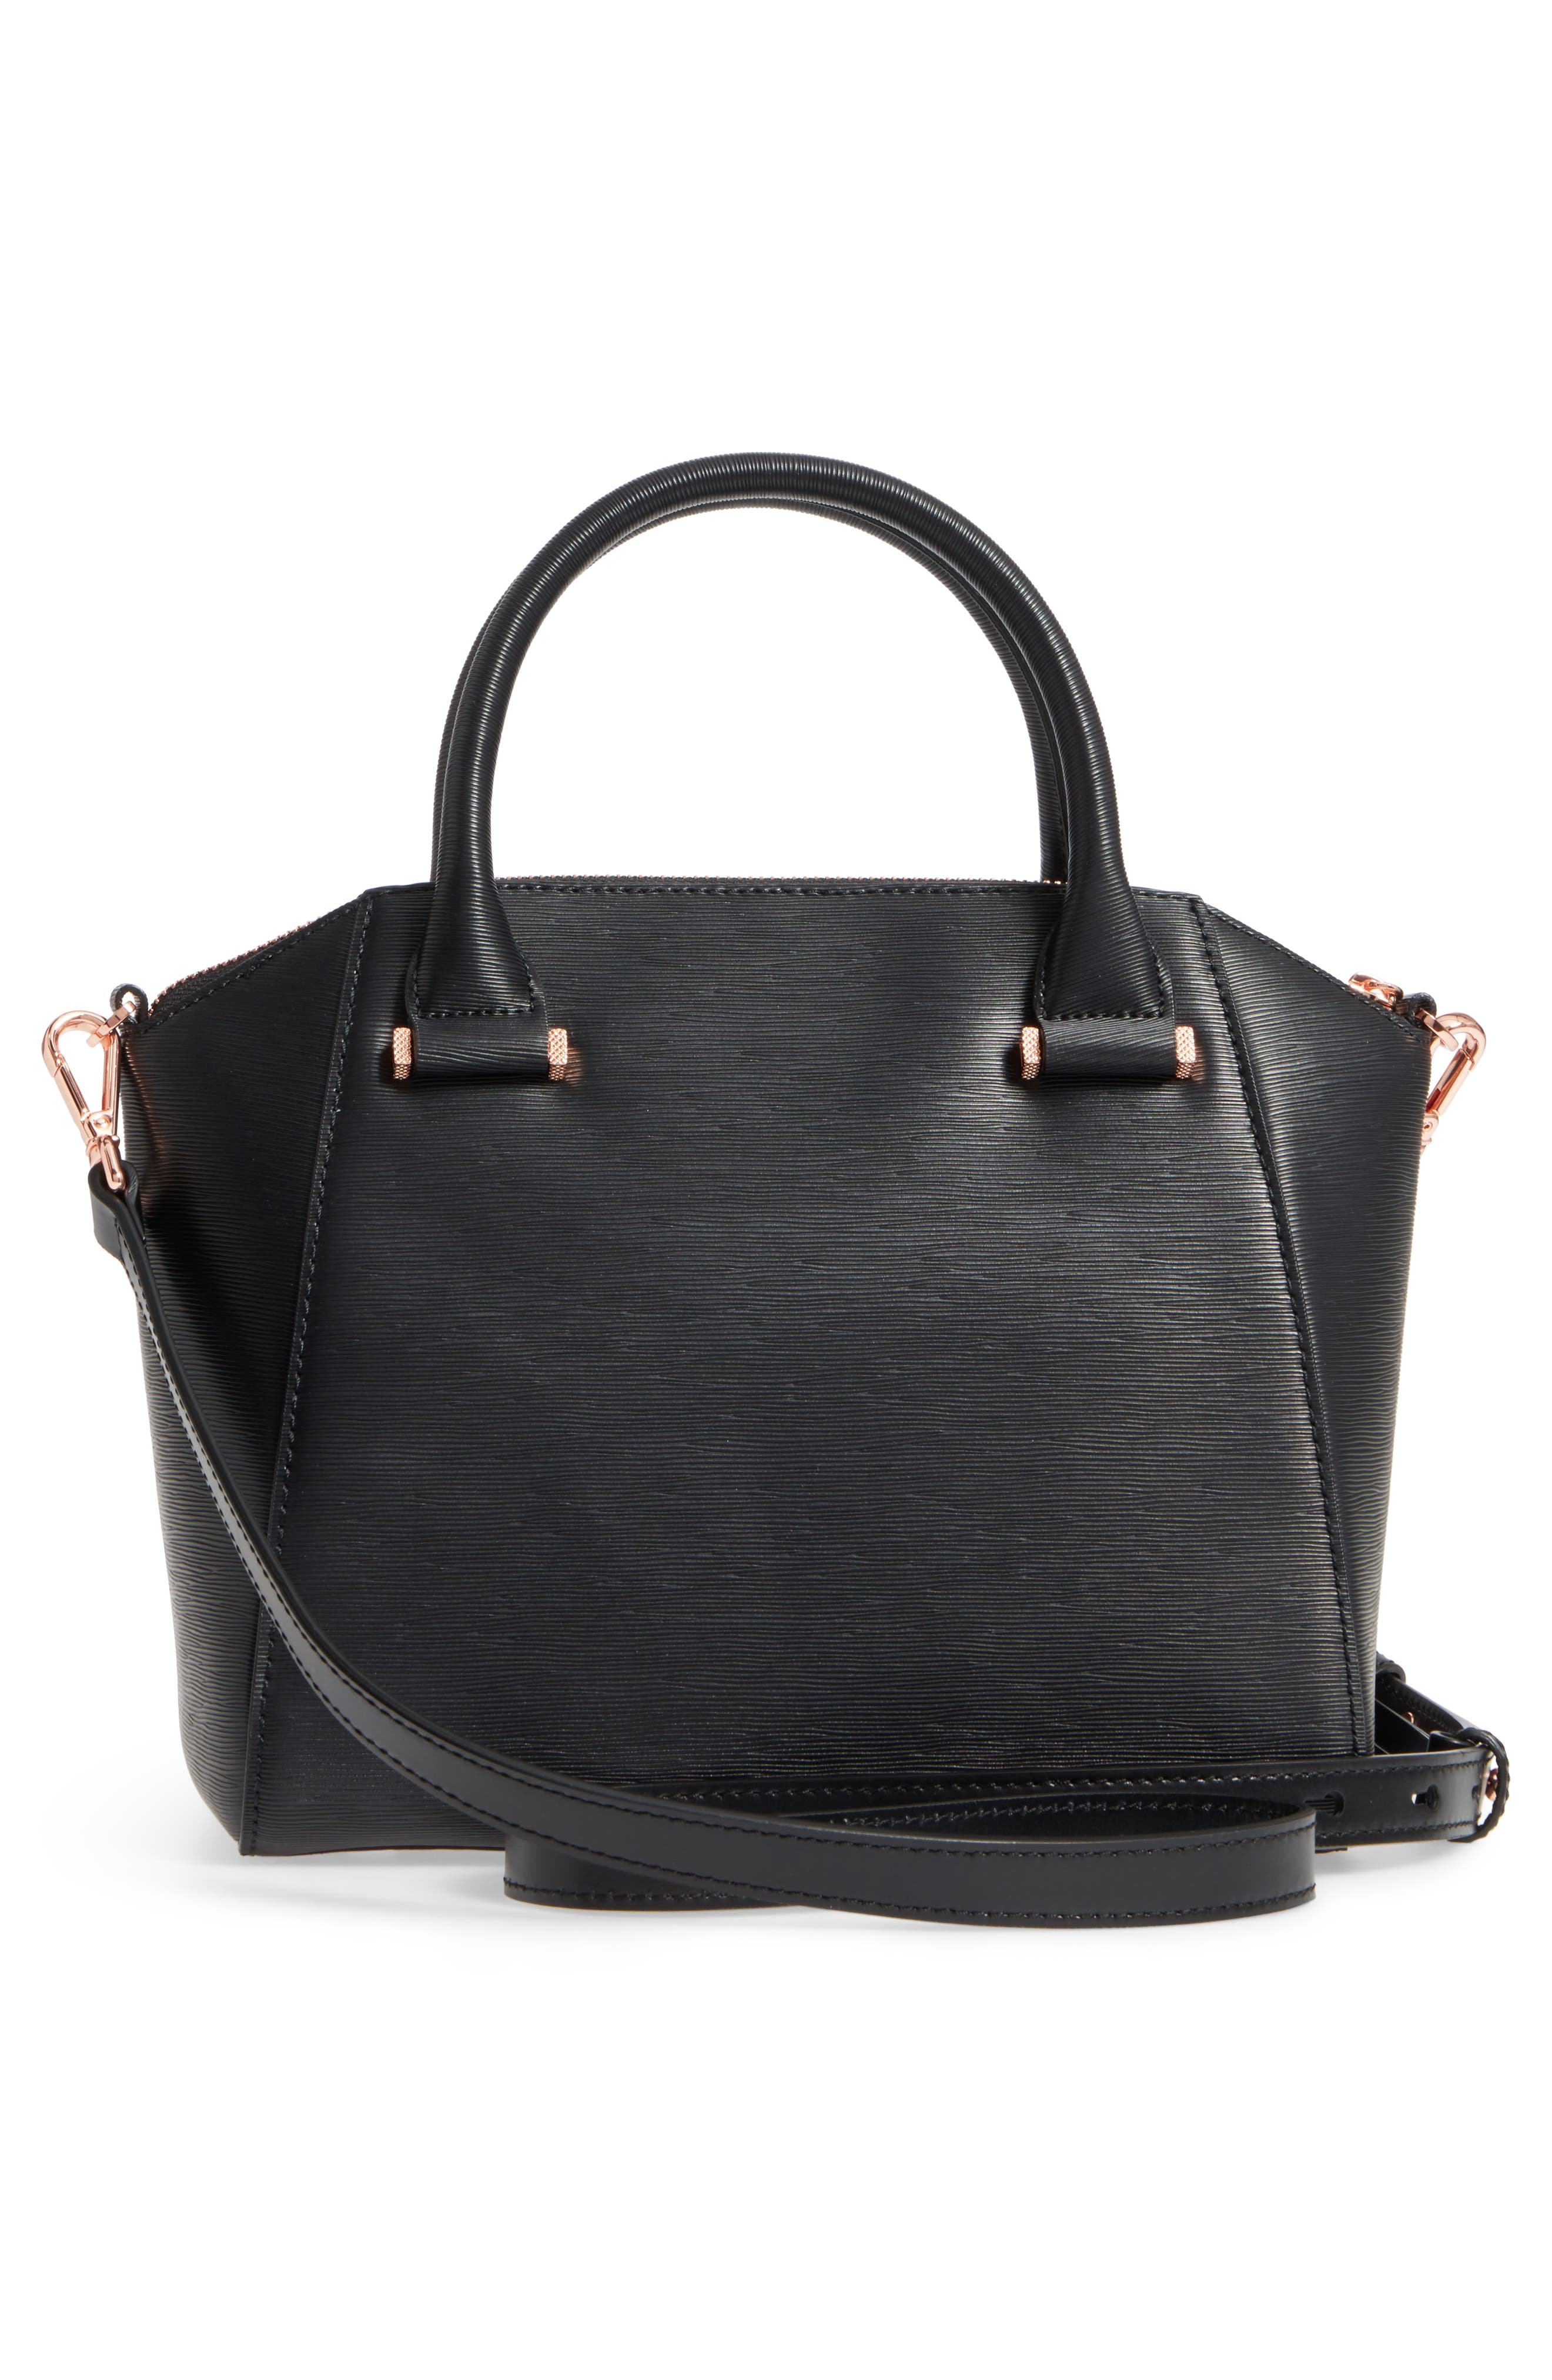 Charmea Bow Small Leather Tote,                             Alternate thumbnail 3, color,                             Black